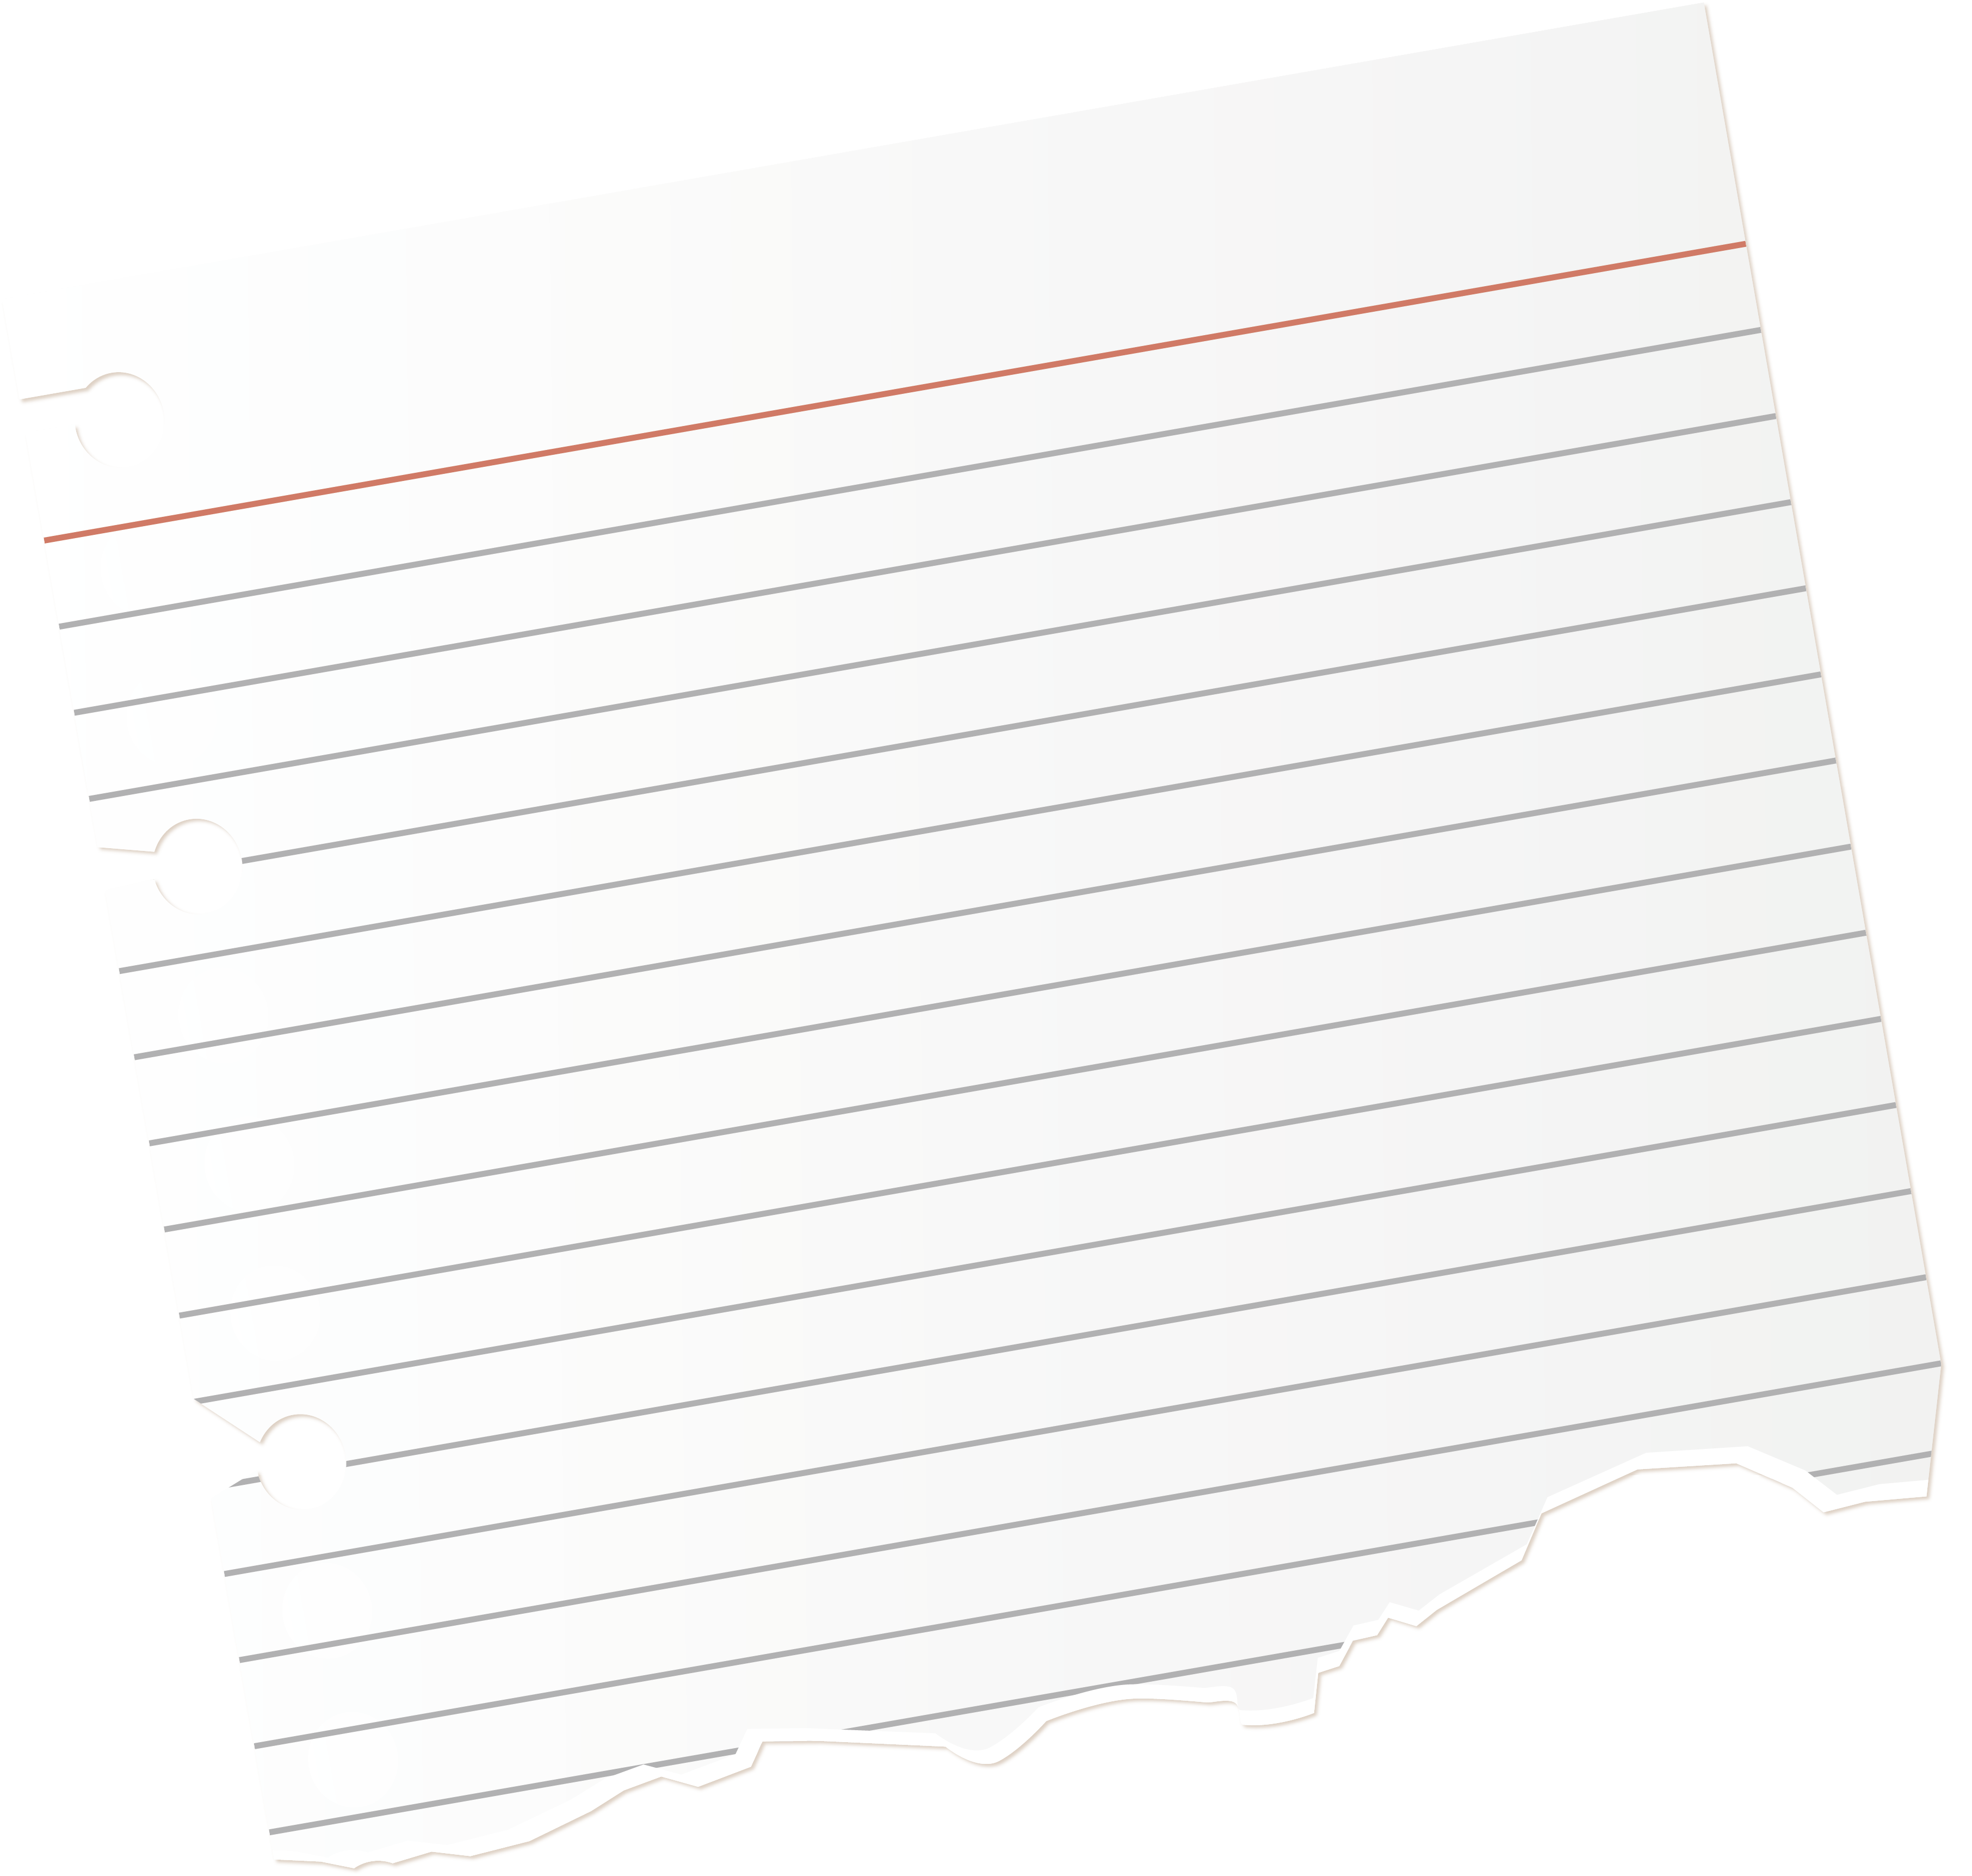 Torn notebook paper png. Document text white pattern